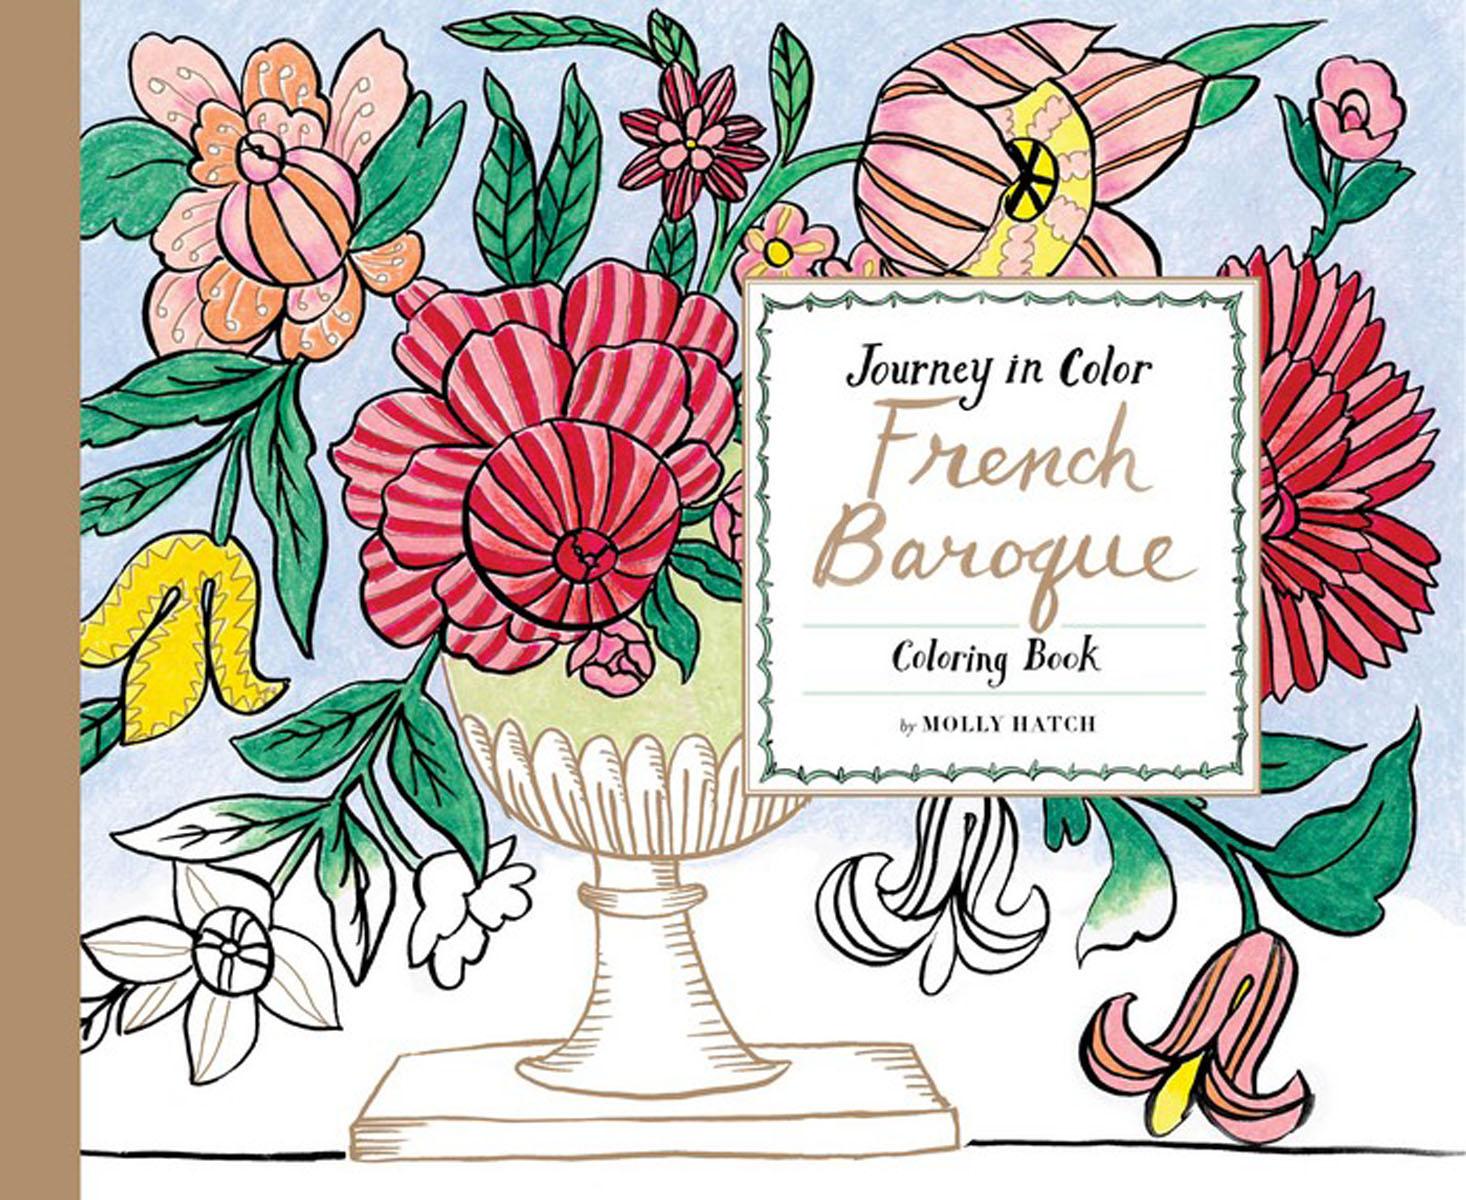 Journey in Color: French Baroque Coloring Book jewelry and metalwork of marie zimmermann